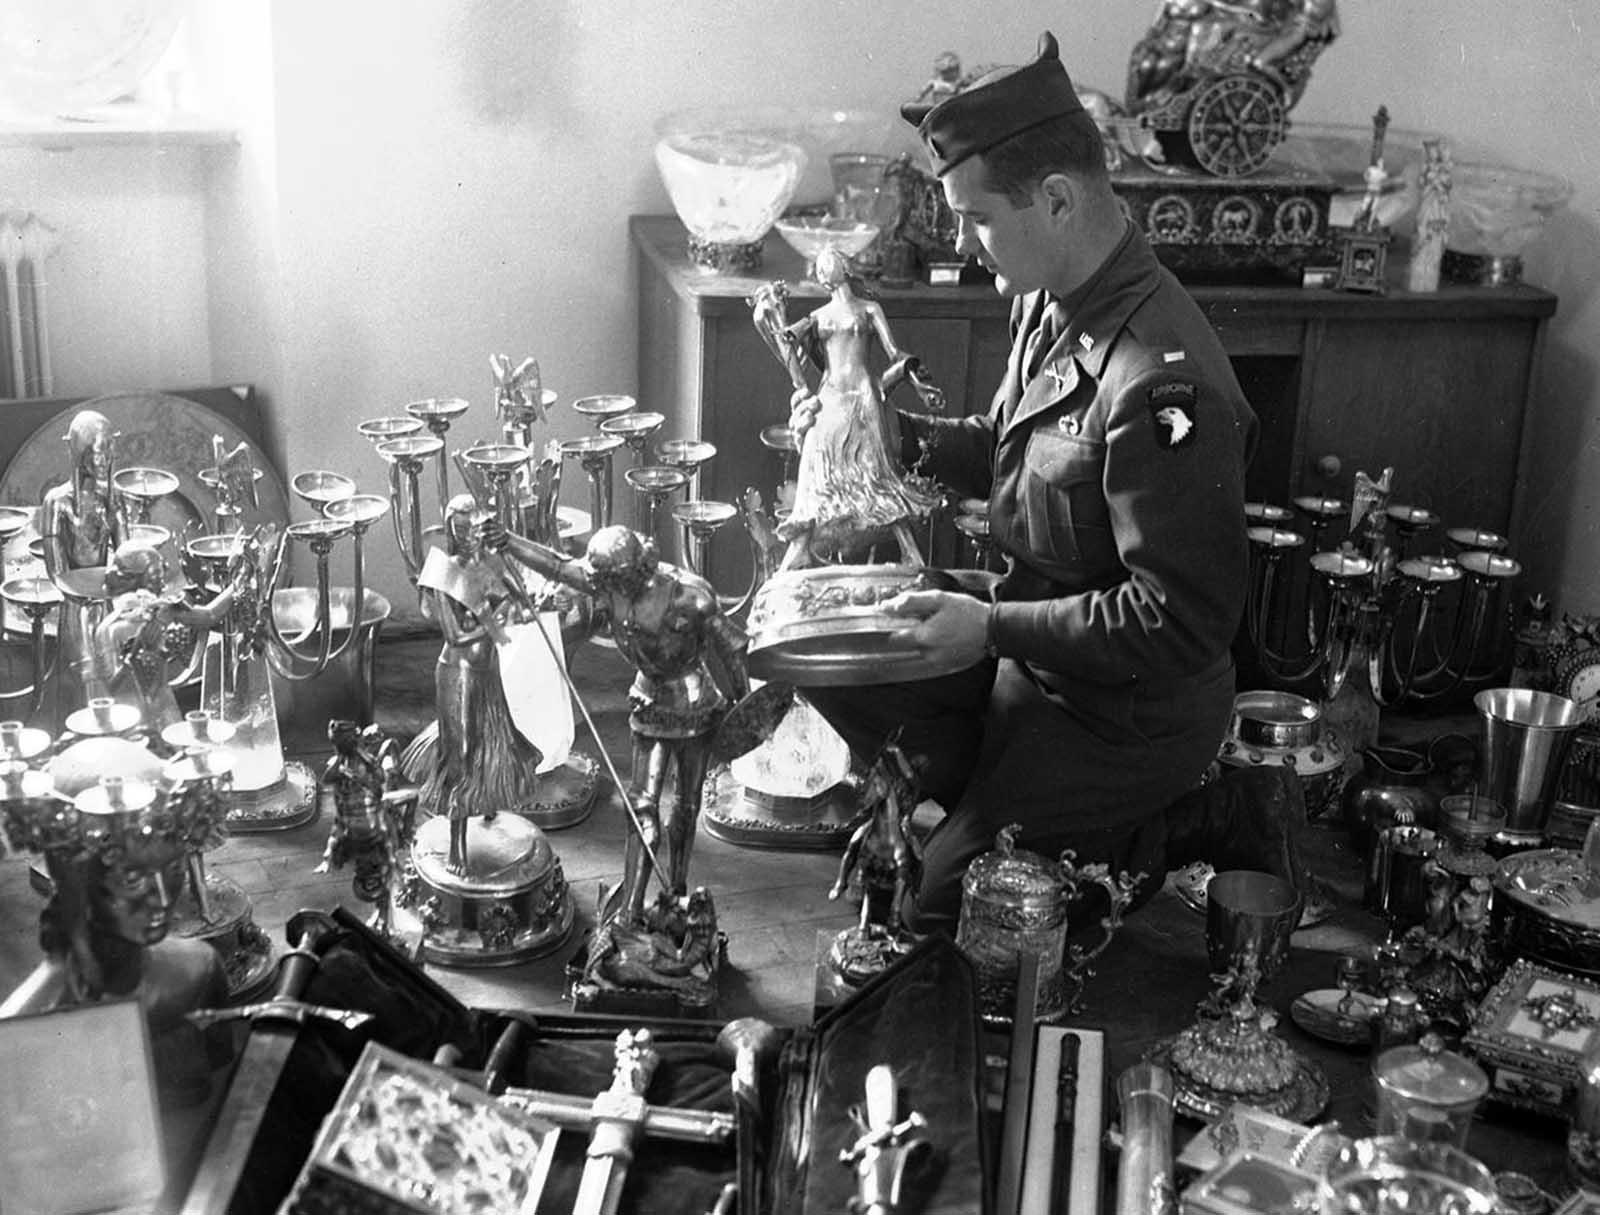 A U.S. soldier examines a solid gold statue, part of Hermann Goering's private loot, found by the 7th U.S. Army in a mountainside cave near Schonau am Konigssee, Germany, on May 25, 1945. The secret cave, the second found to date, also contained stolen priceless paintings from all over Europe.